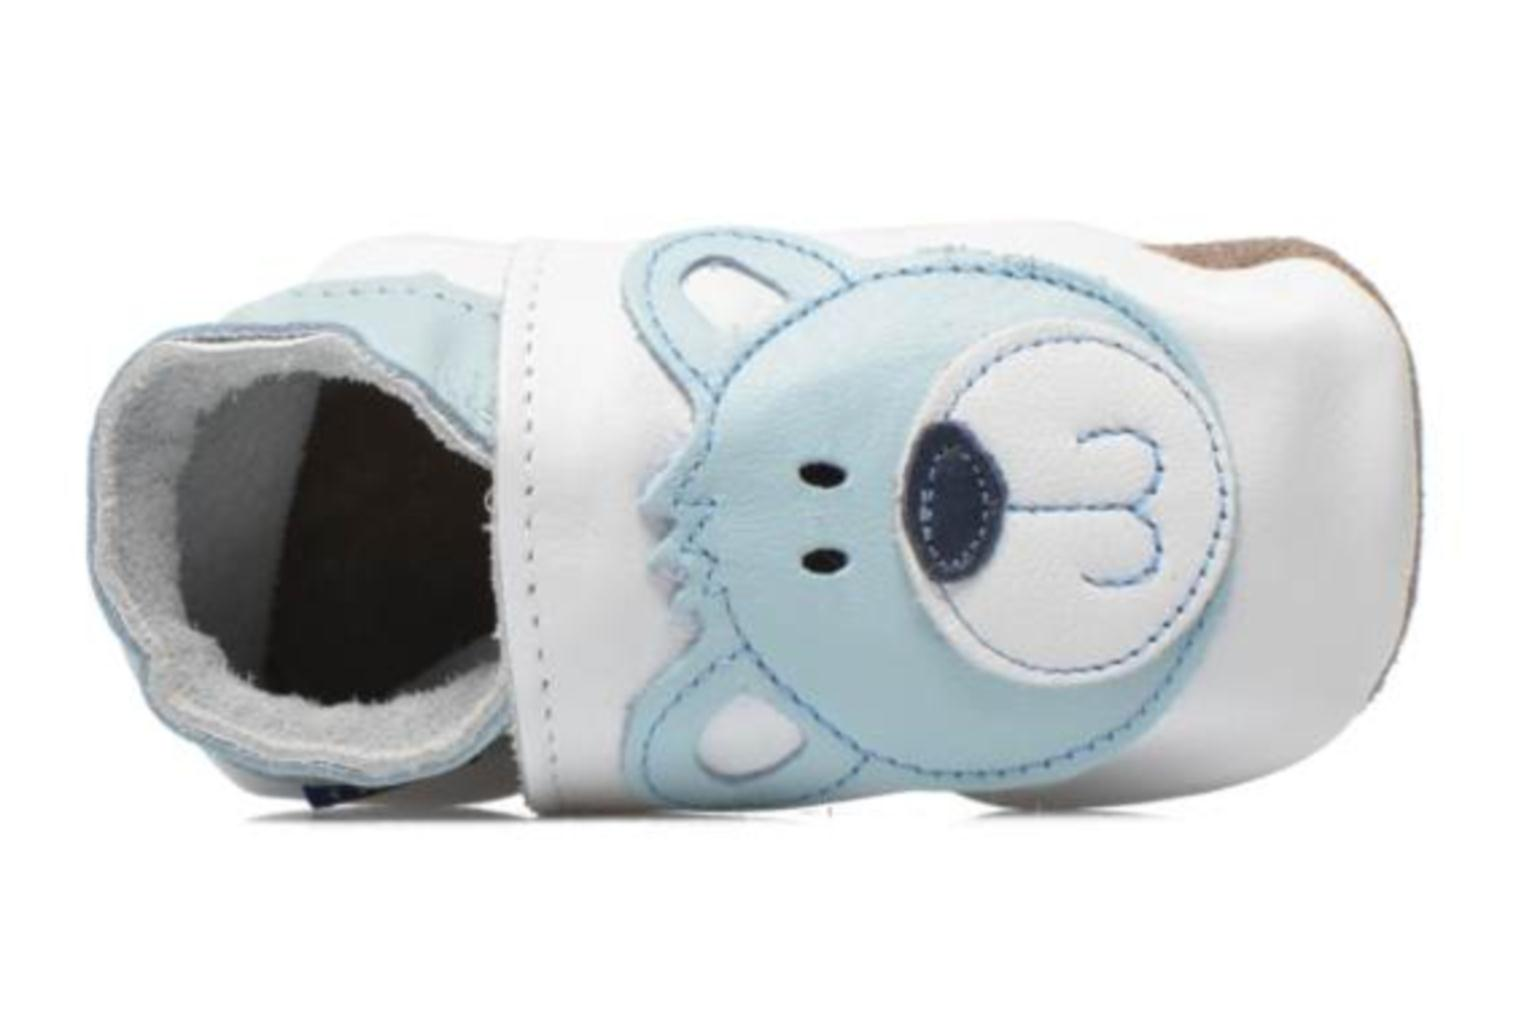 Slippers Inch Blue Teddy Blue White view from the left